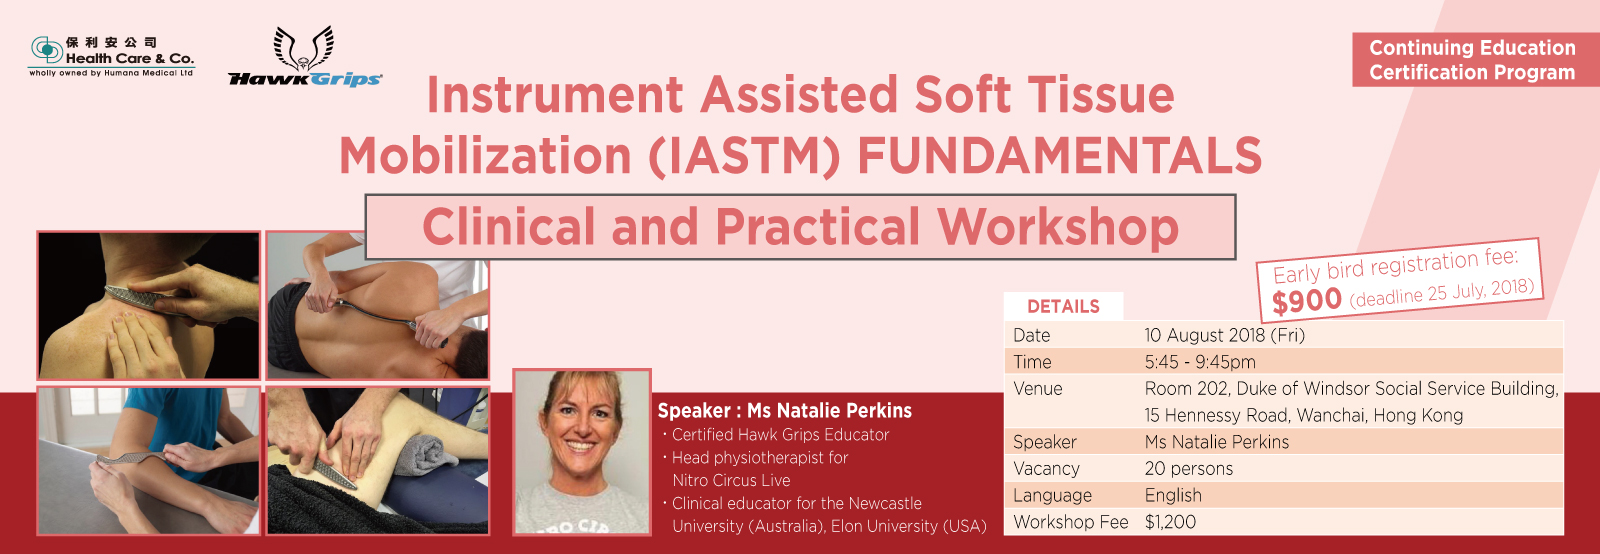 Instrument Assisted Soft Tissue Mobilization (IASTM) FUNDAMENTALS - Clinical and Practical Workshop